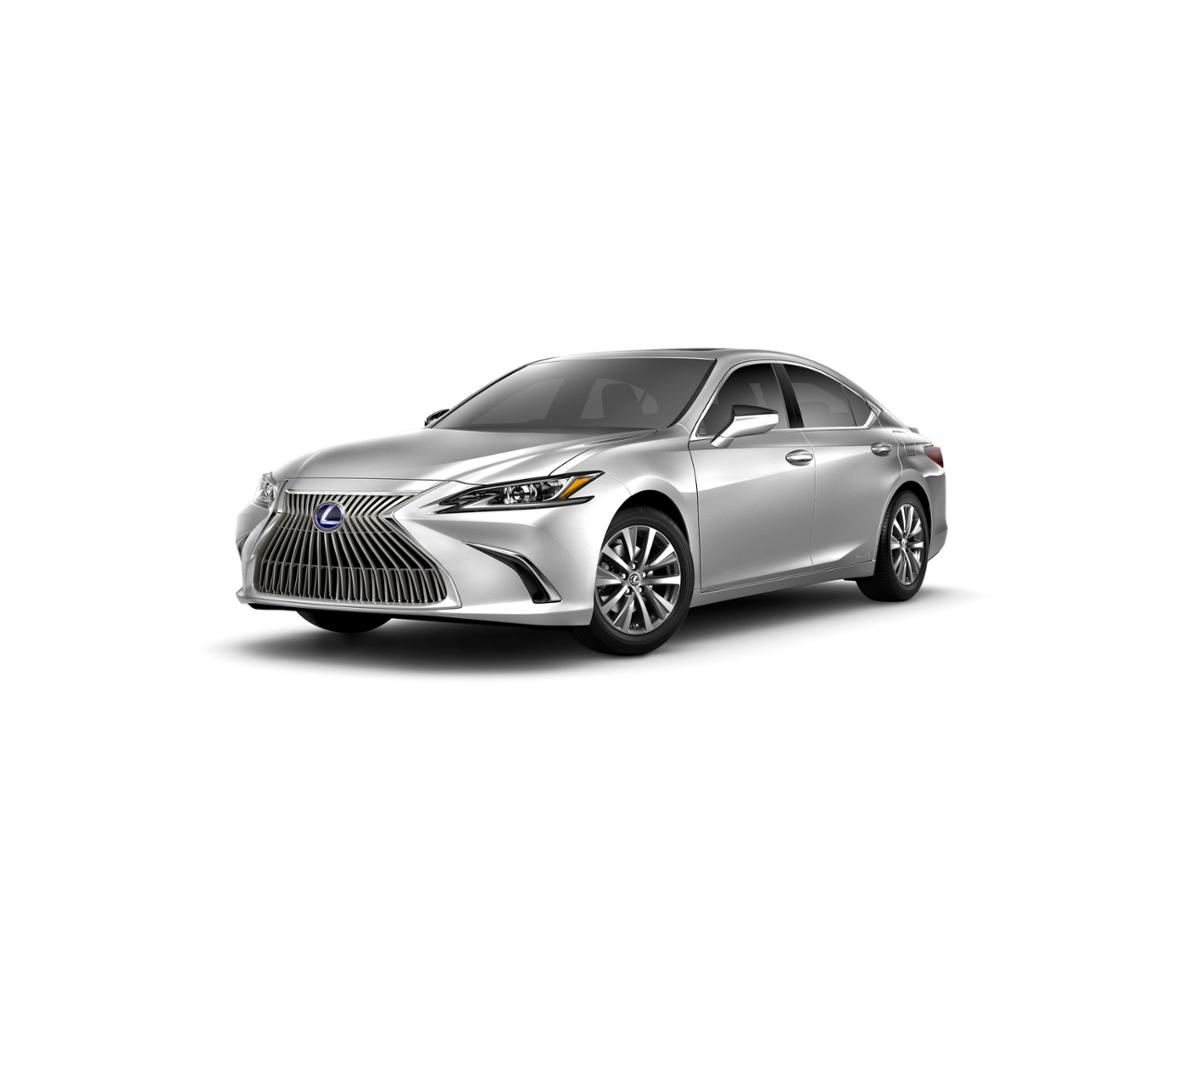 2019 Lexus ES 300h Vehicle Photo in Bedford, NH 03110